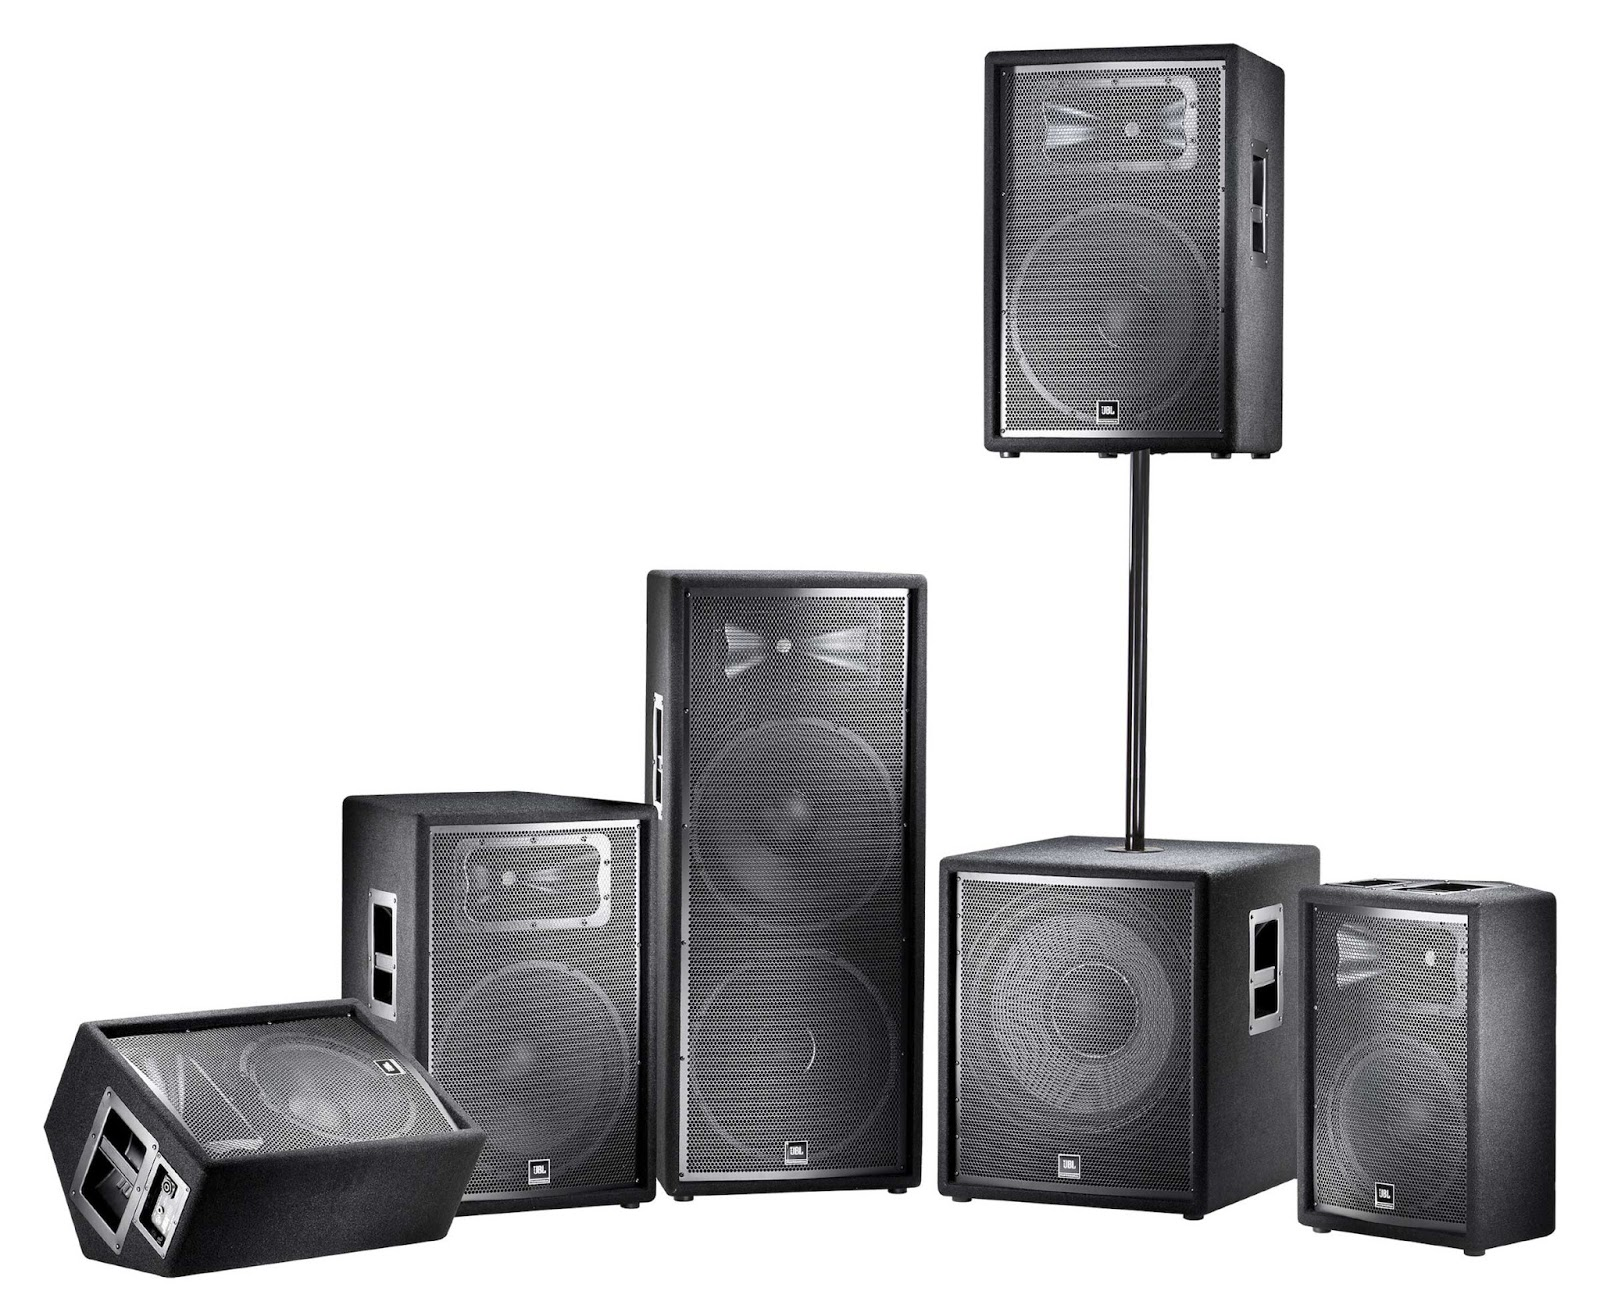 harman s jbl professional introduces jrx200 series portable passive loudspeakers at prolight. Black Bedroom Furniture Sets. Home Design Ideas